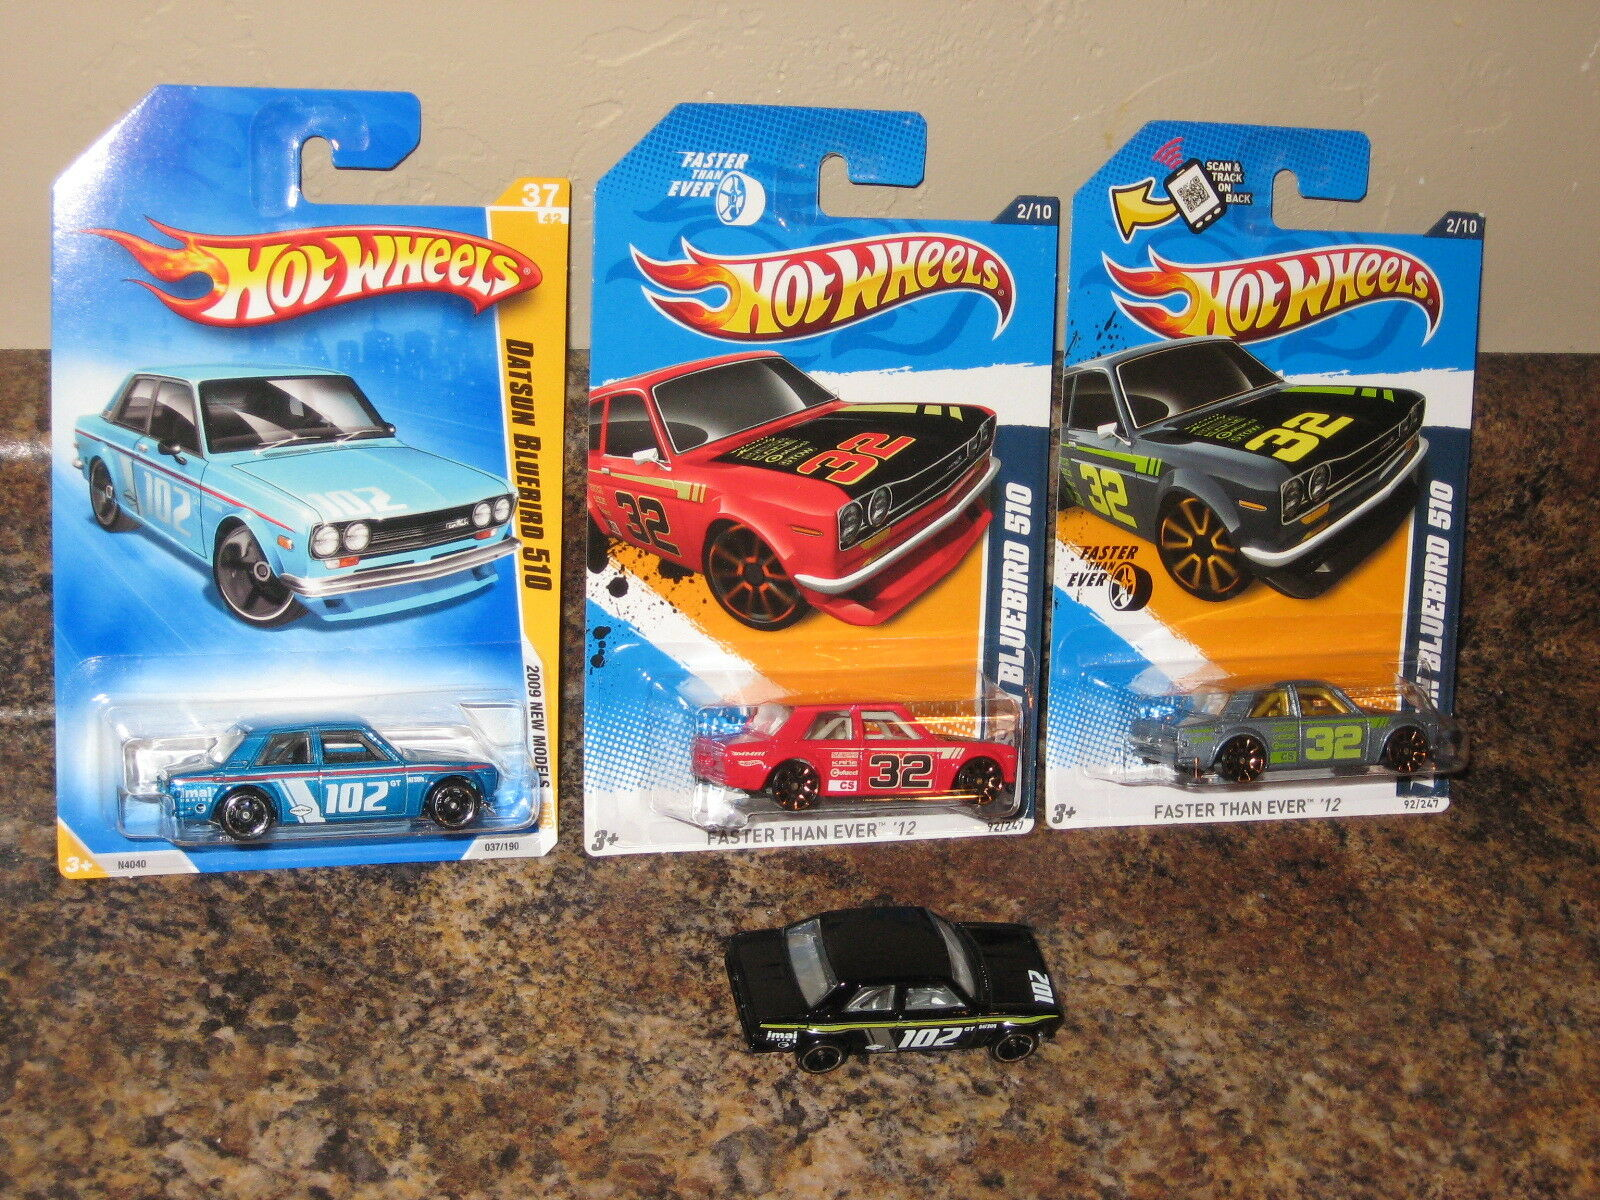 Hot Wheels Lot of 4 1969 Datsun blueebird 510 Variation New Model bluee Black 1600